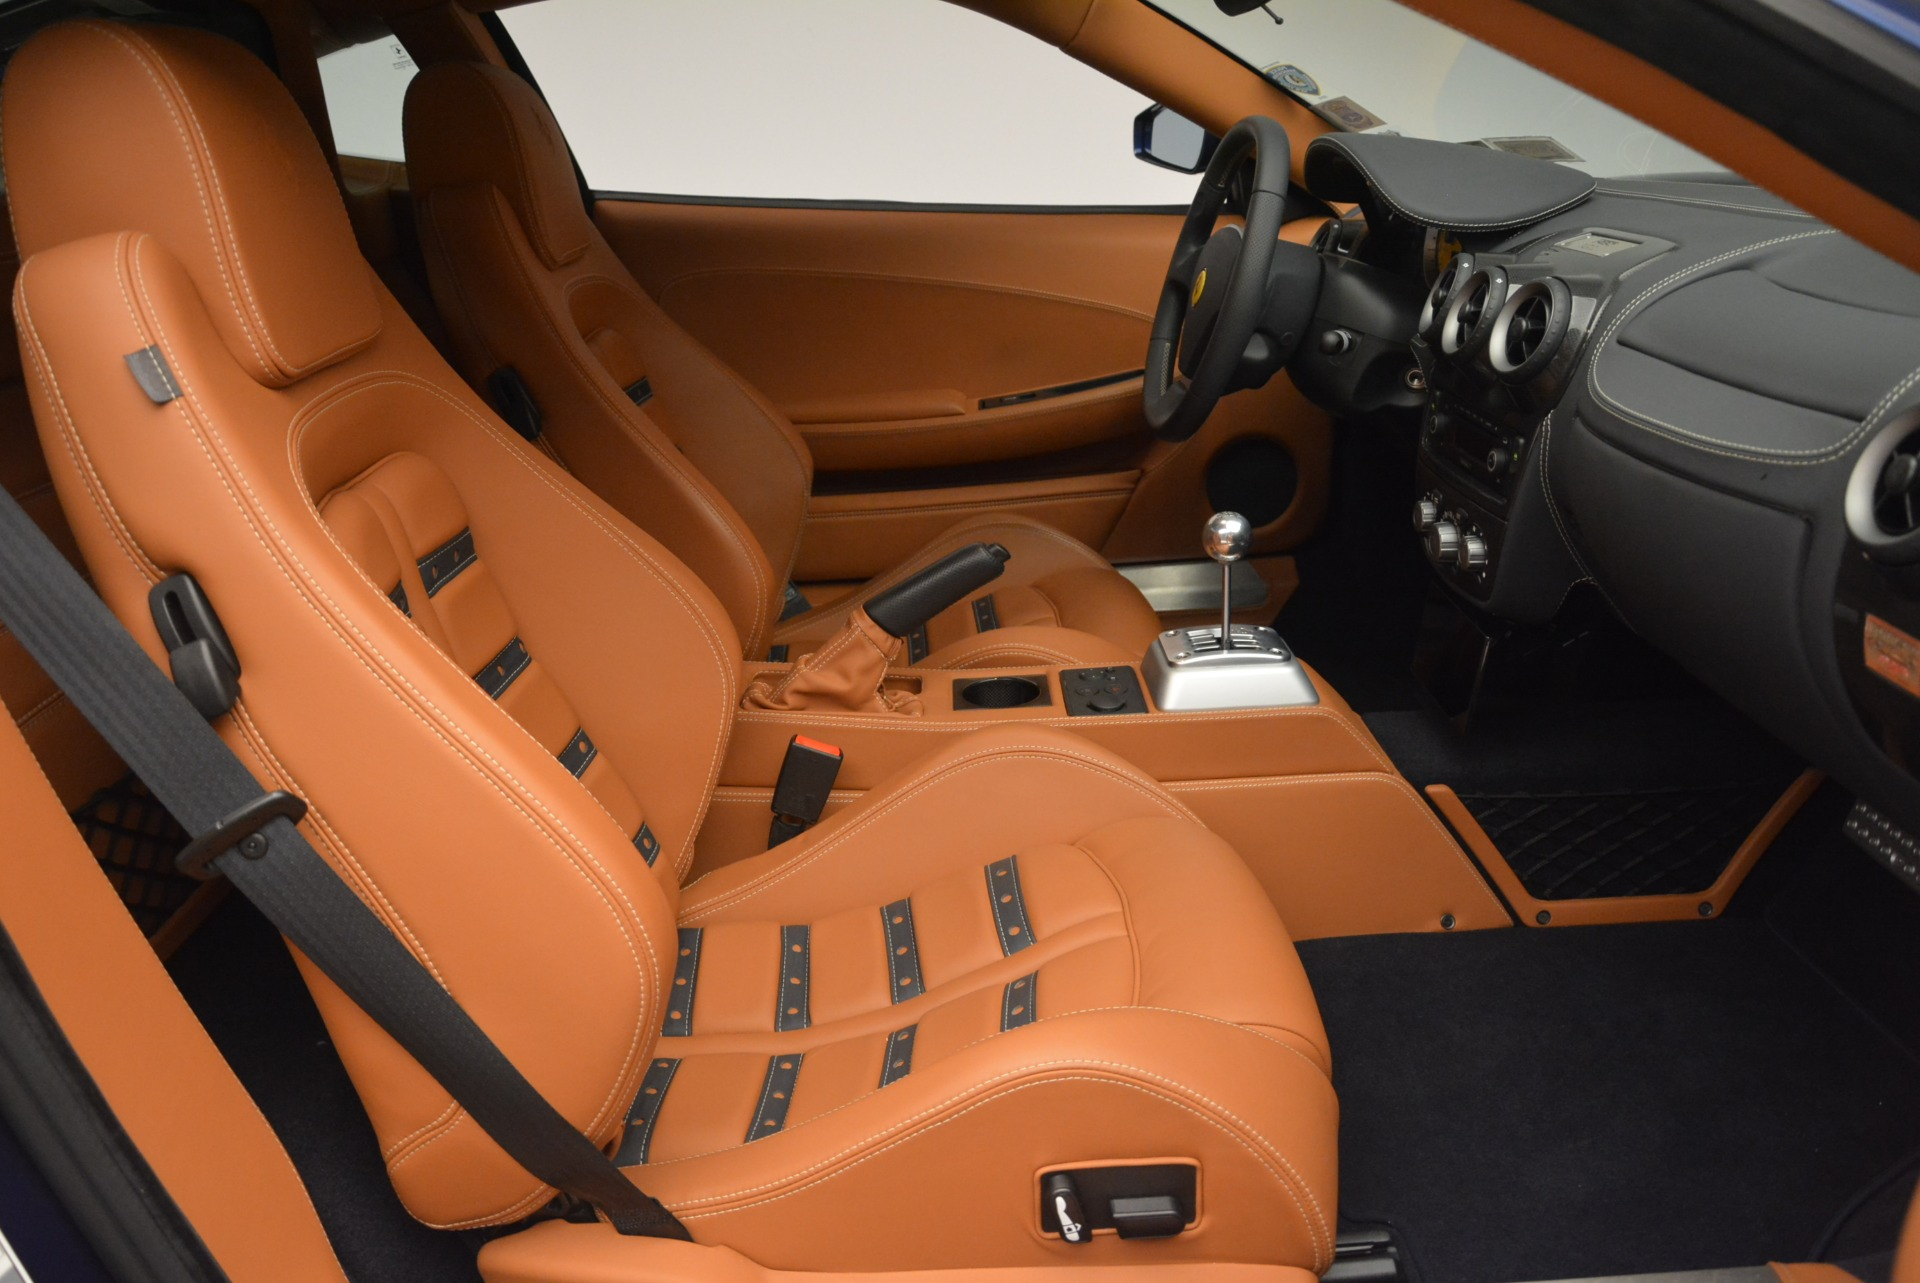 Used 2009 Ferrari F430 6-Speed Manual For Sale In Greenwich, CT 2466_p19